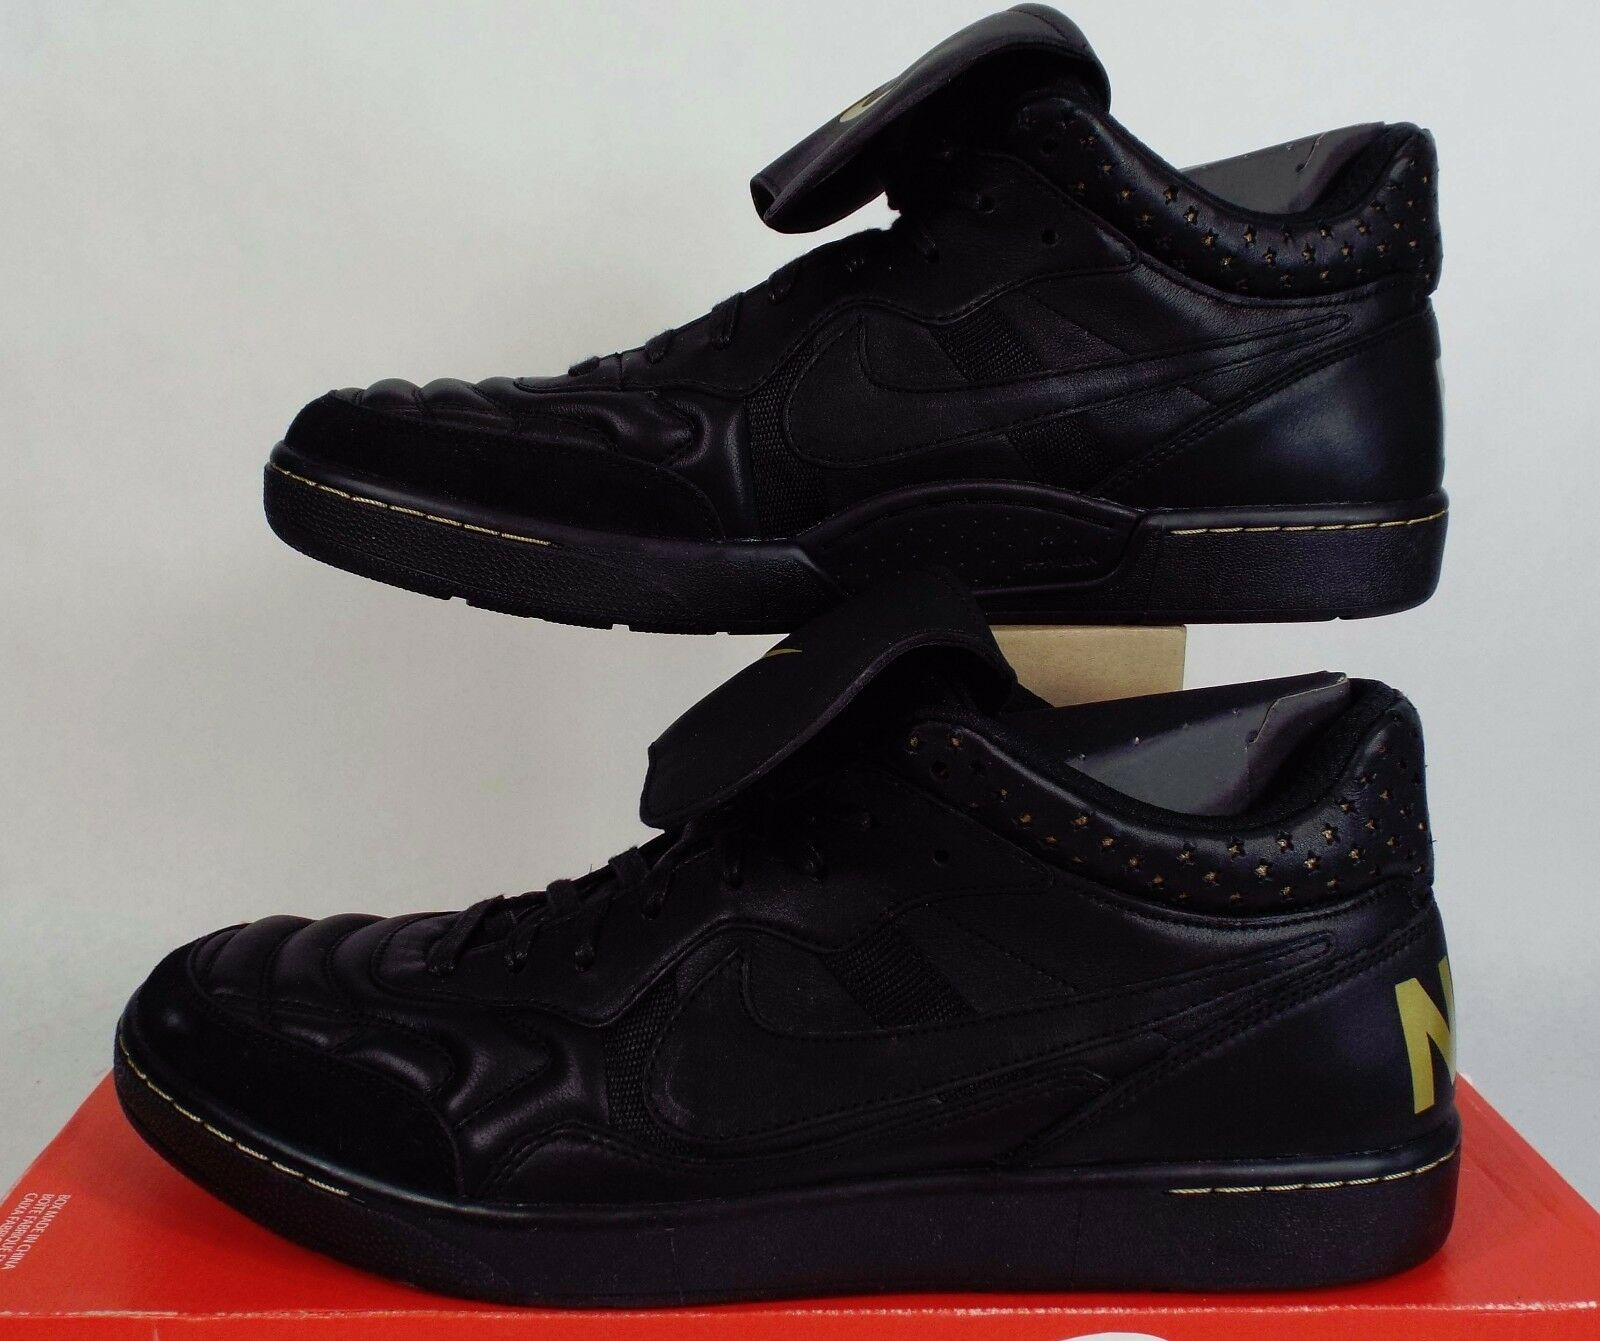 New homme 14 NIKE FC Tiempo Premier 94 Mid FC NIKE Blk Gold Leather chaussures 125 685205-001 b5f93e